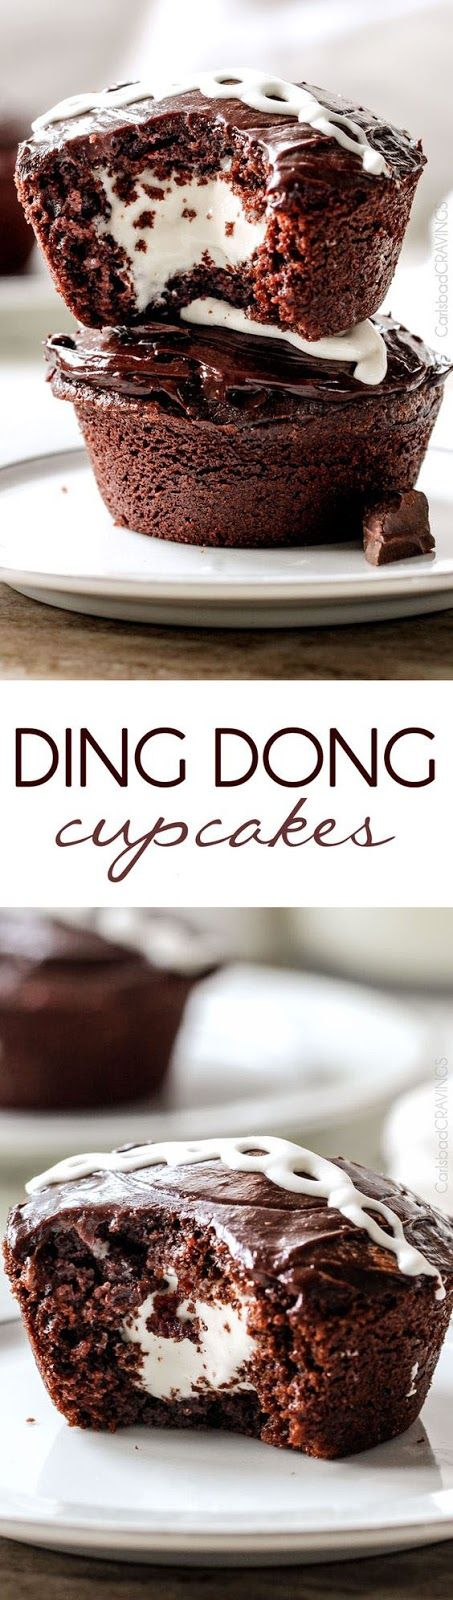 Ding Dong Cupcakes are rich, moist and chocolaty stuffed with creamy marshmallow filling and smothered in a silky chocolate ganache!  You will never want to buy Ding Dongs from the store again!